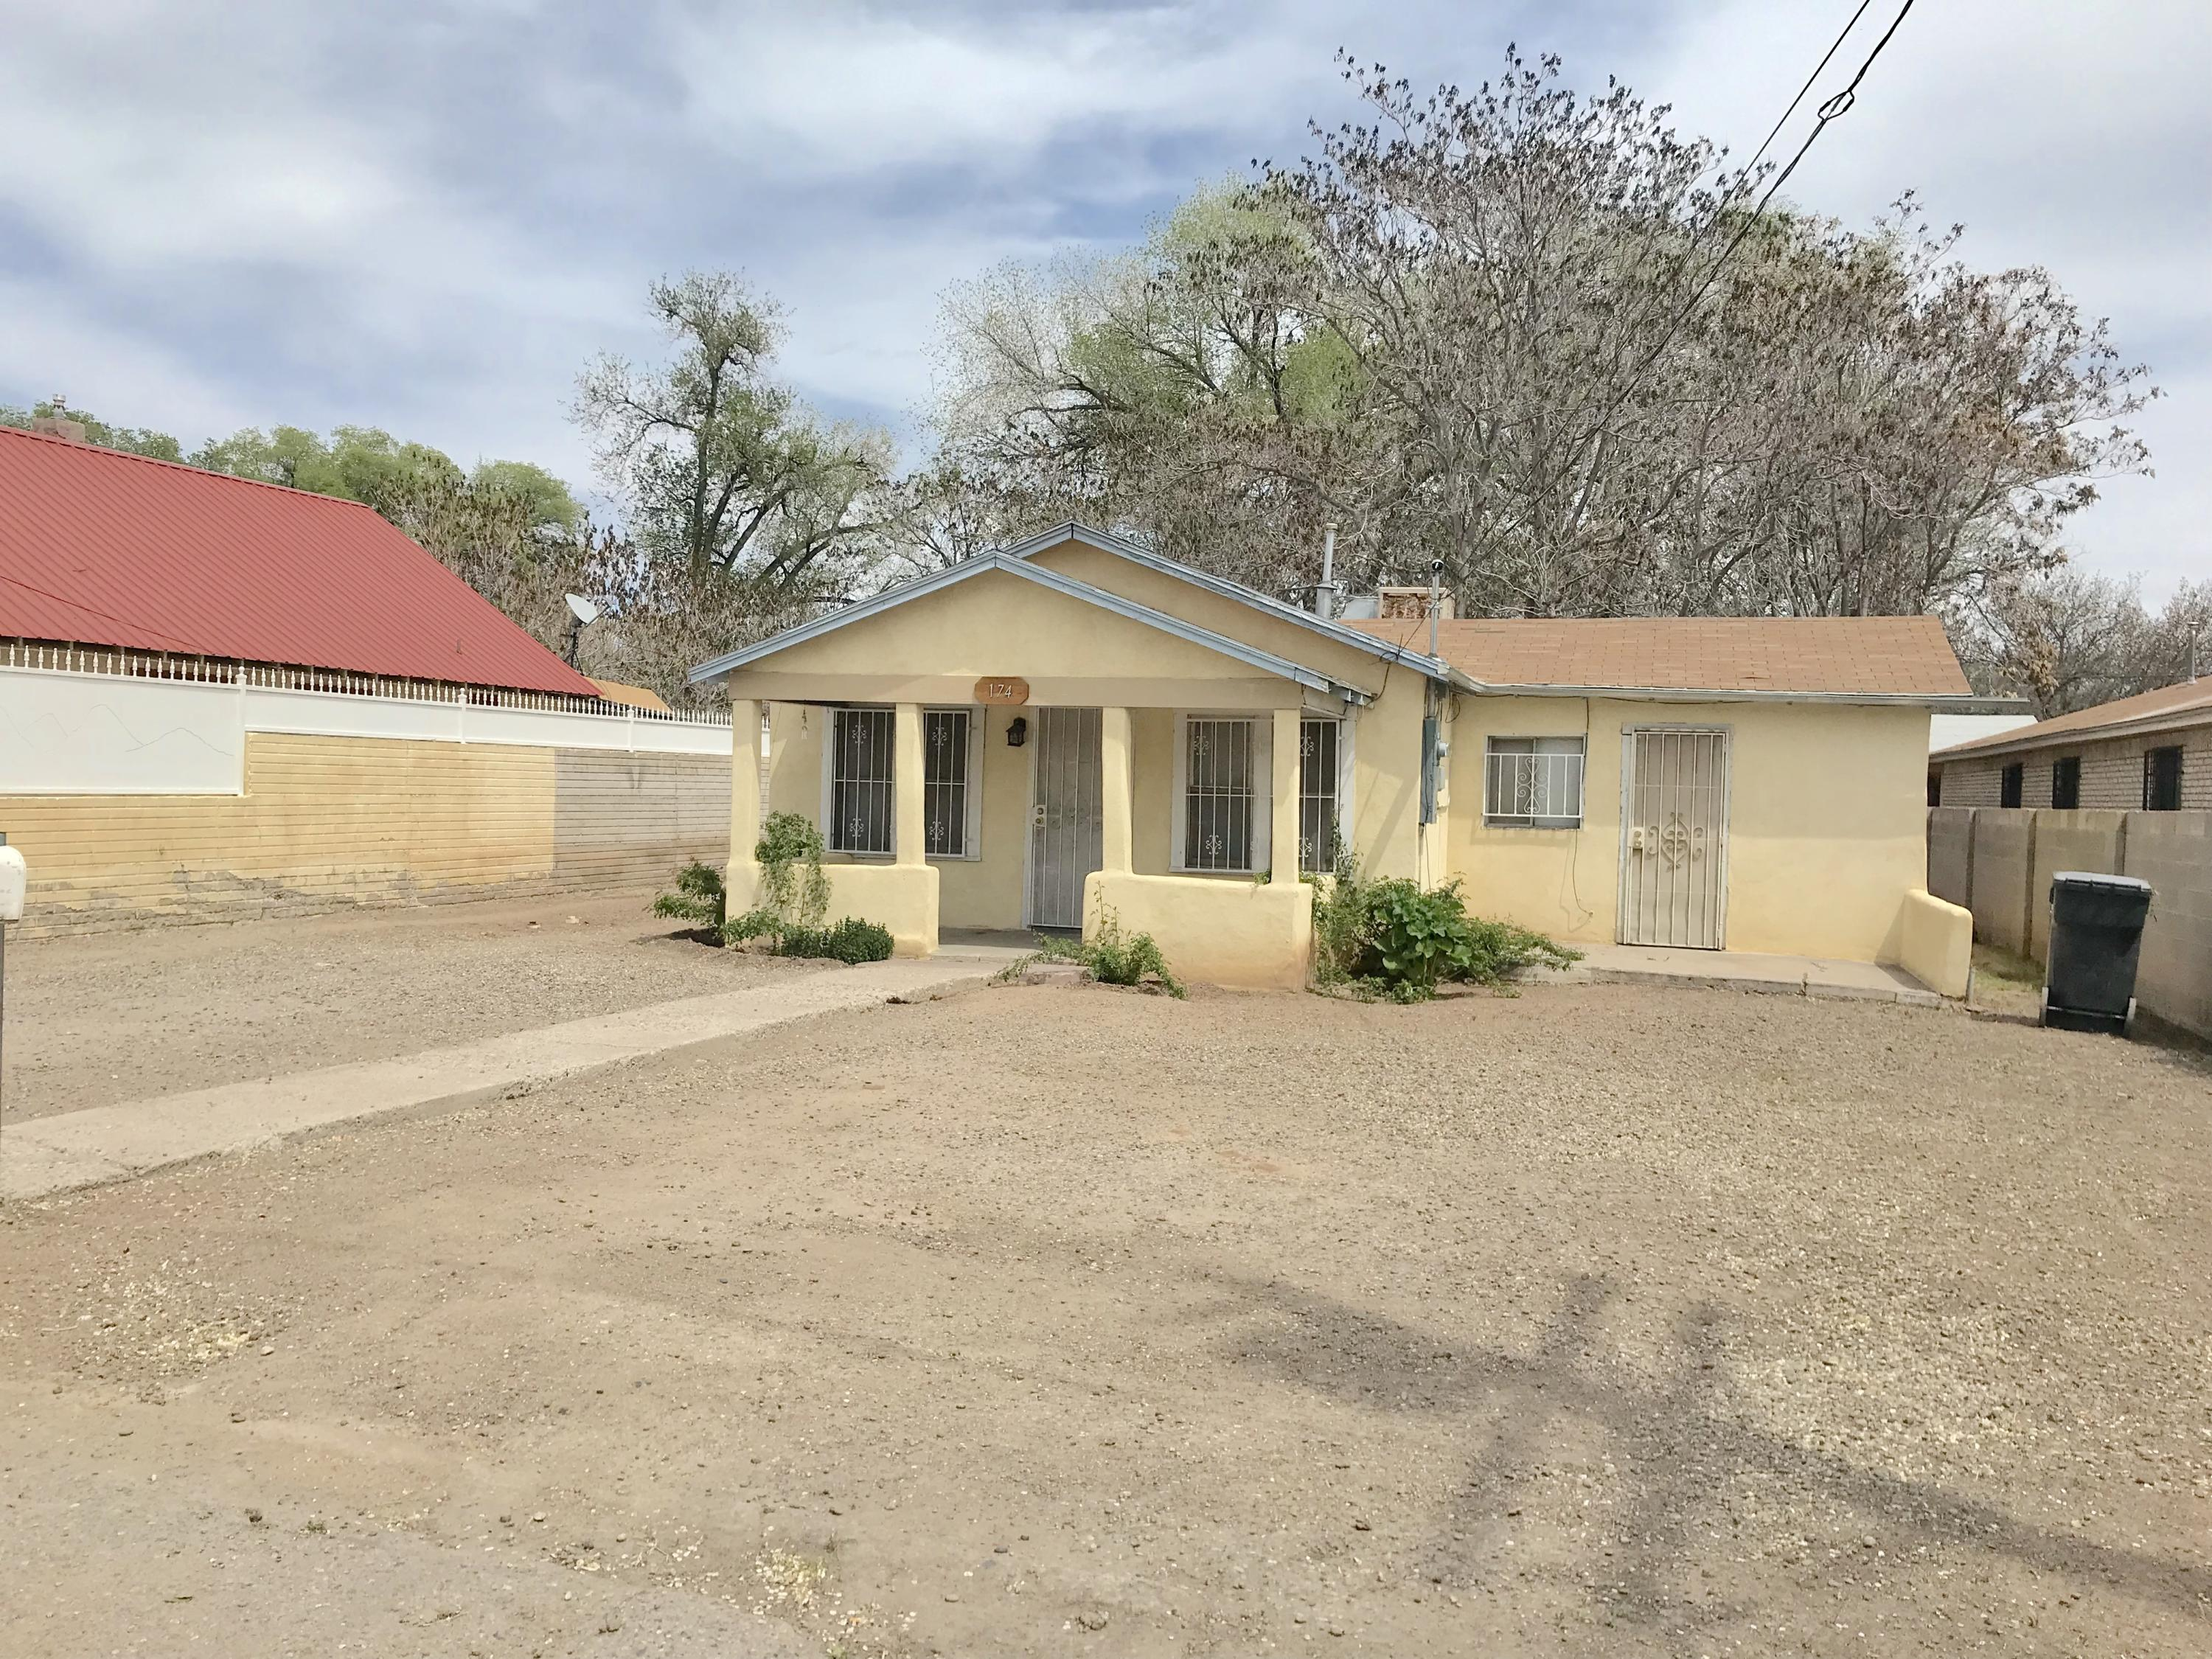 Come check out this South Valley  3 bedroom, 2 bathroom home sitting on .23 of an acre with a ton of potential!  Large master with full bath and separate entrance! Spacious backyard with backyard access on North side of property. Home is being sold as is!